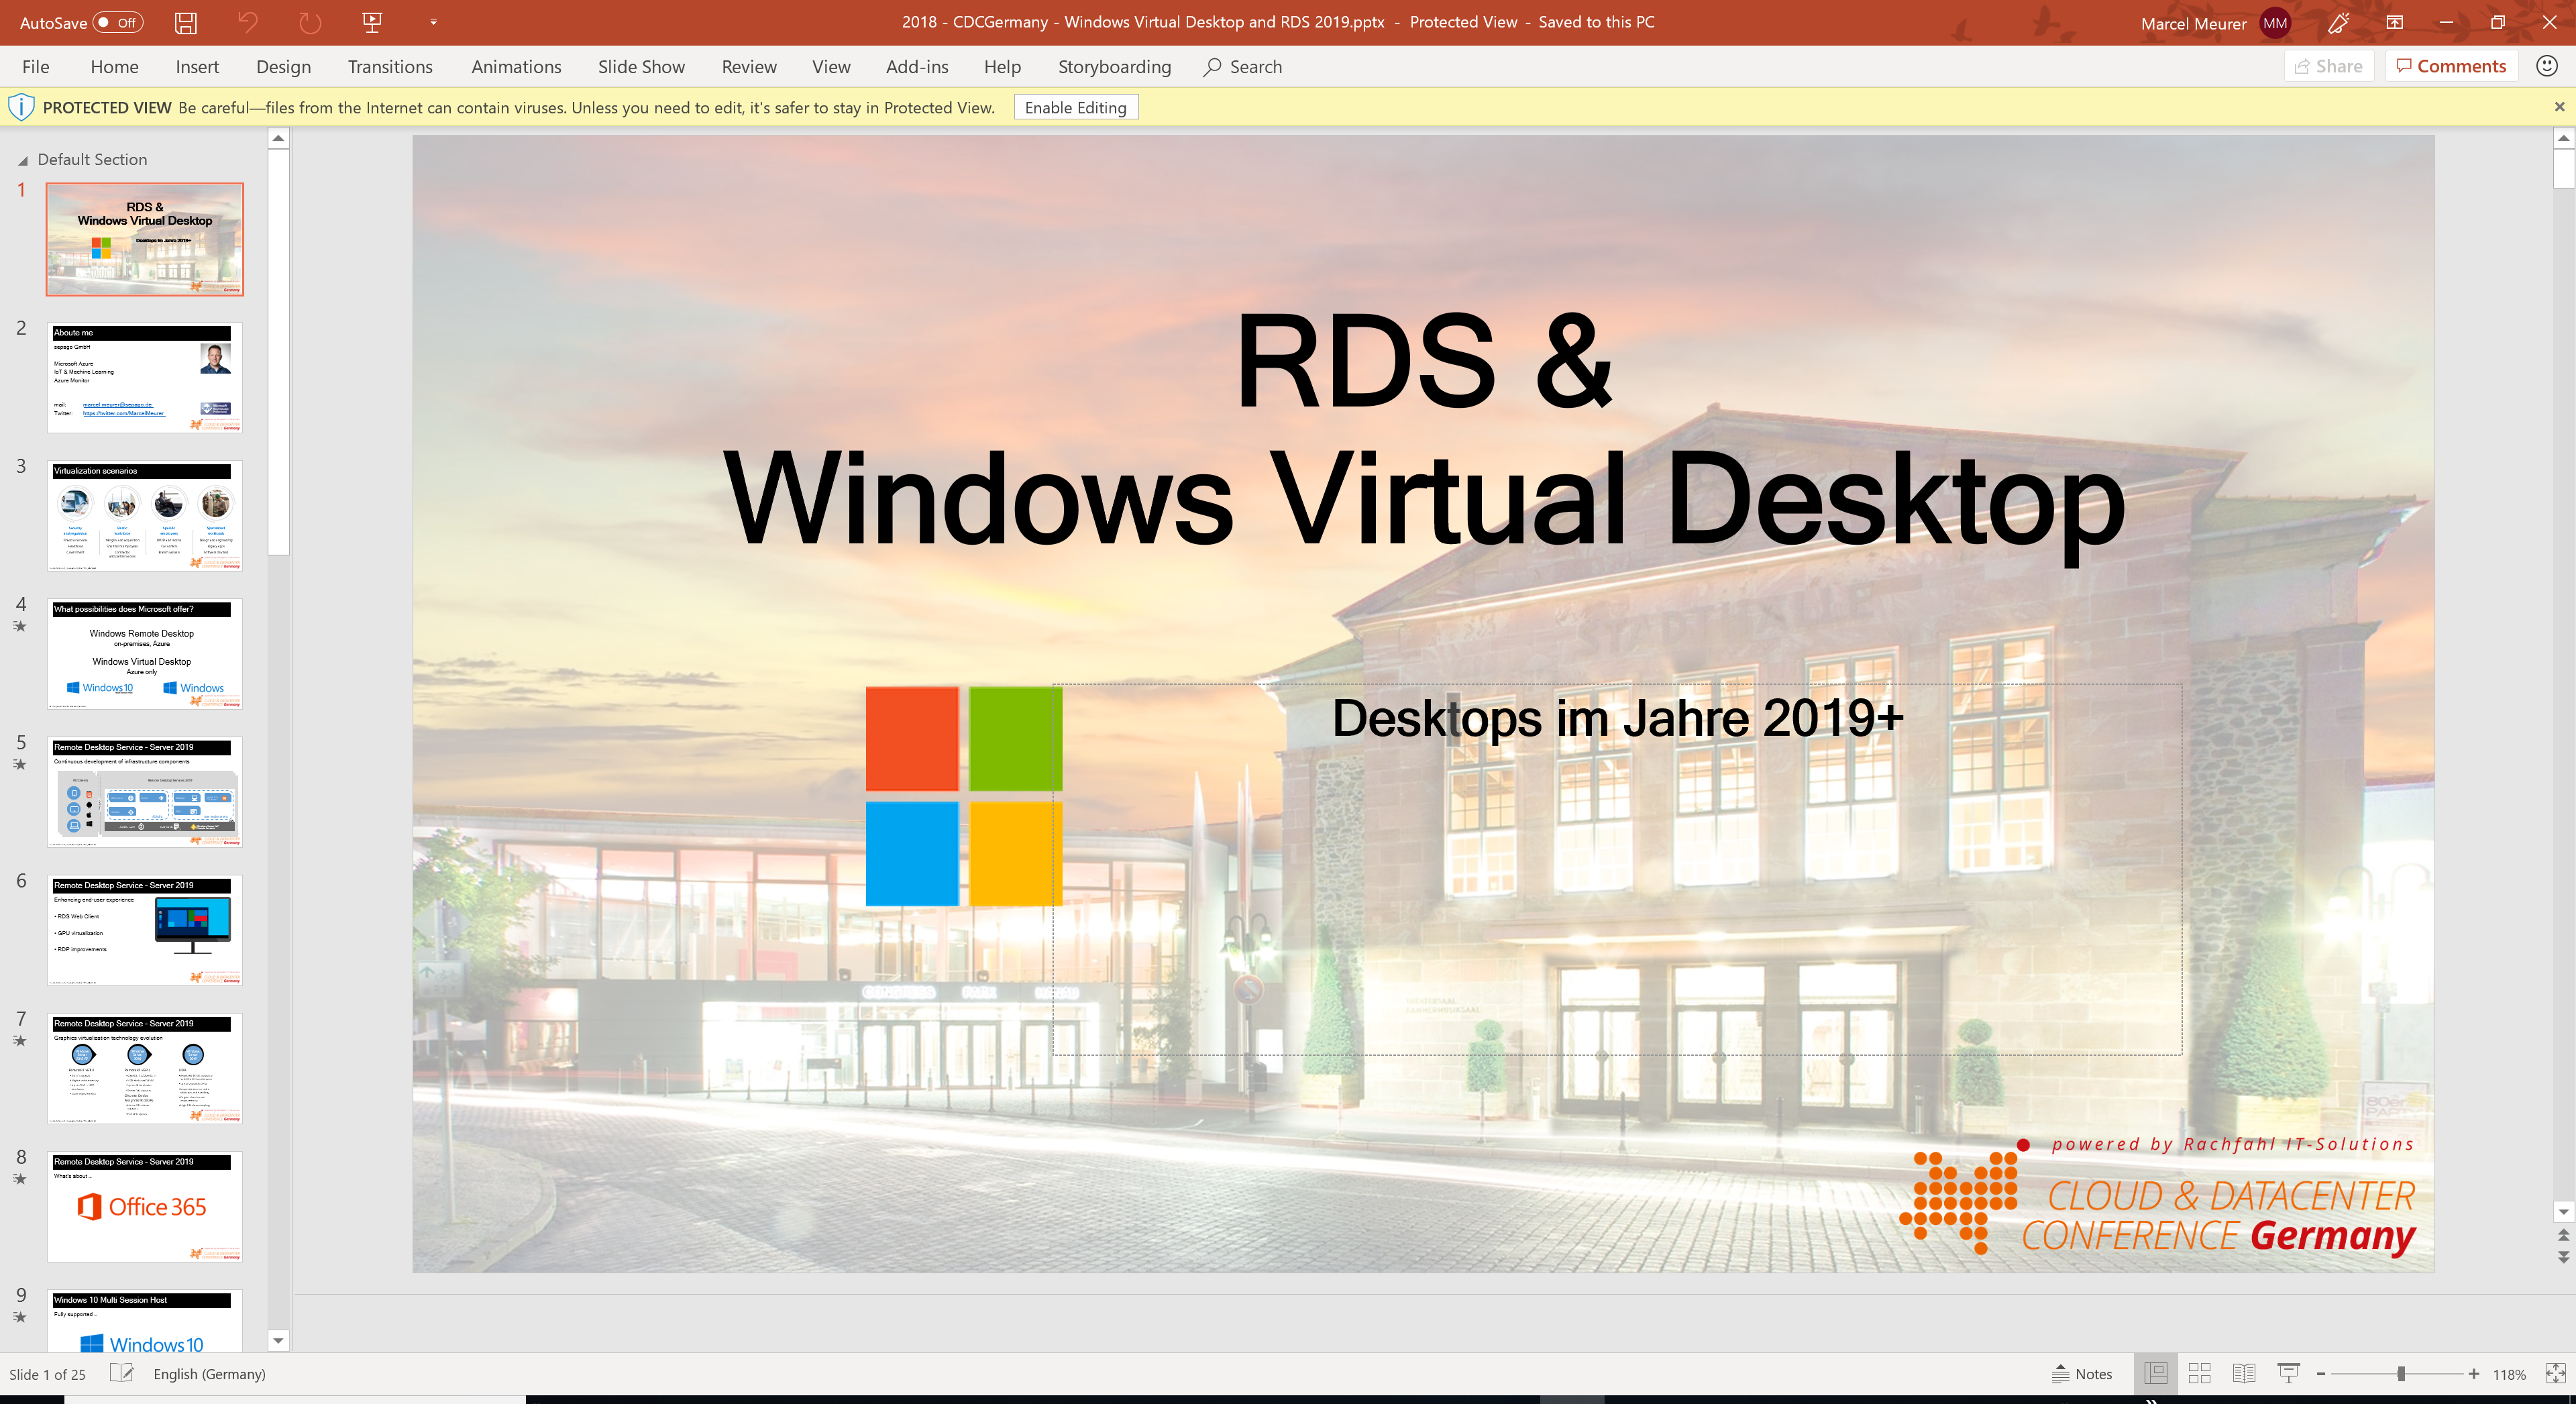 CDC Germany: RDS & Windows Virtual Desktop – Desktops in 2019+